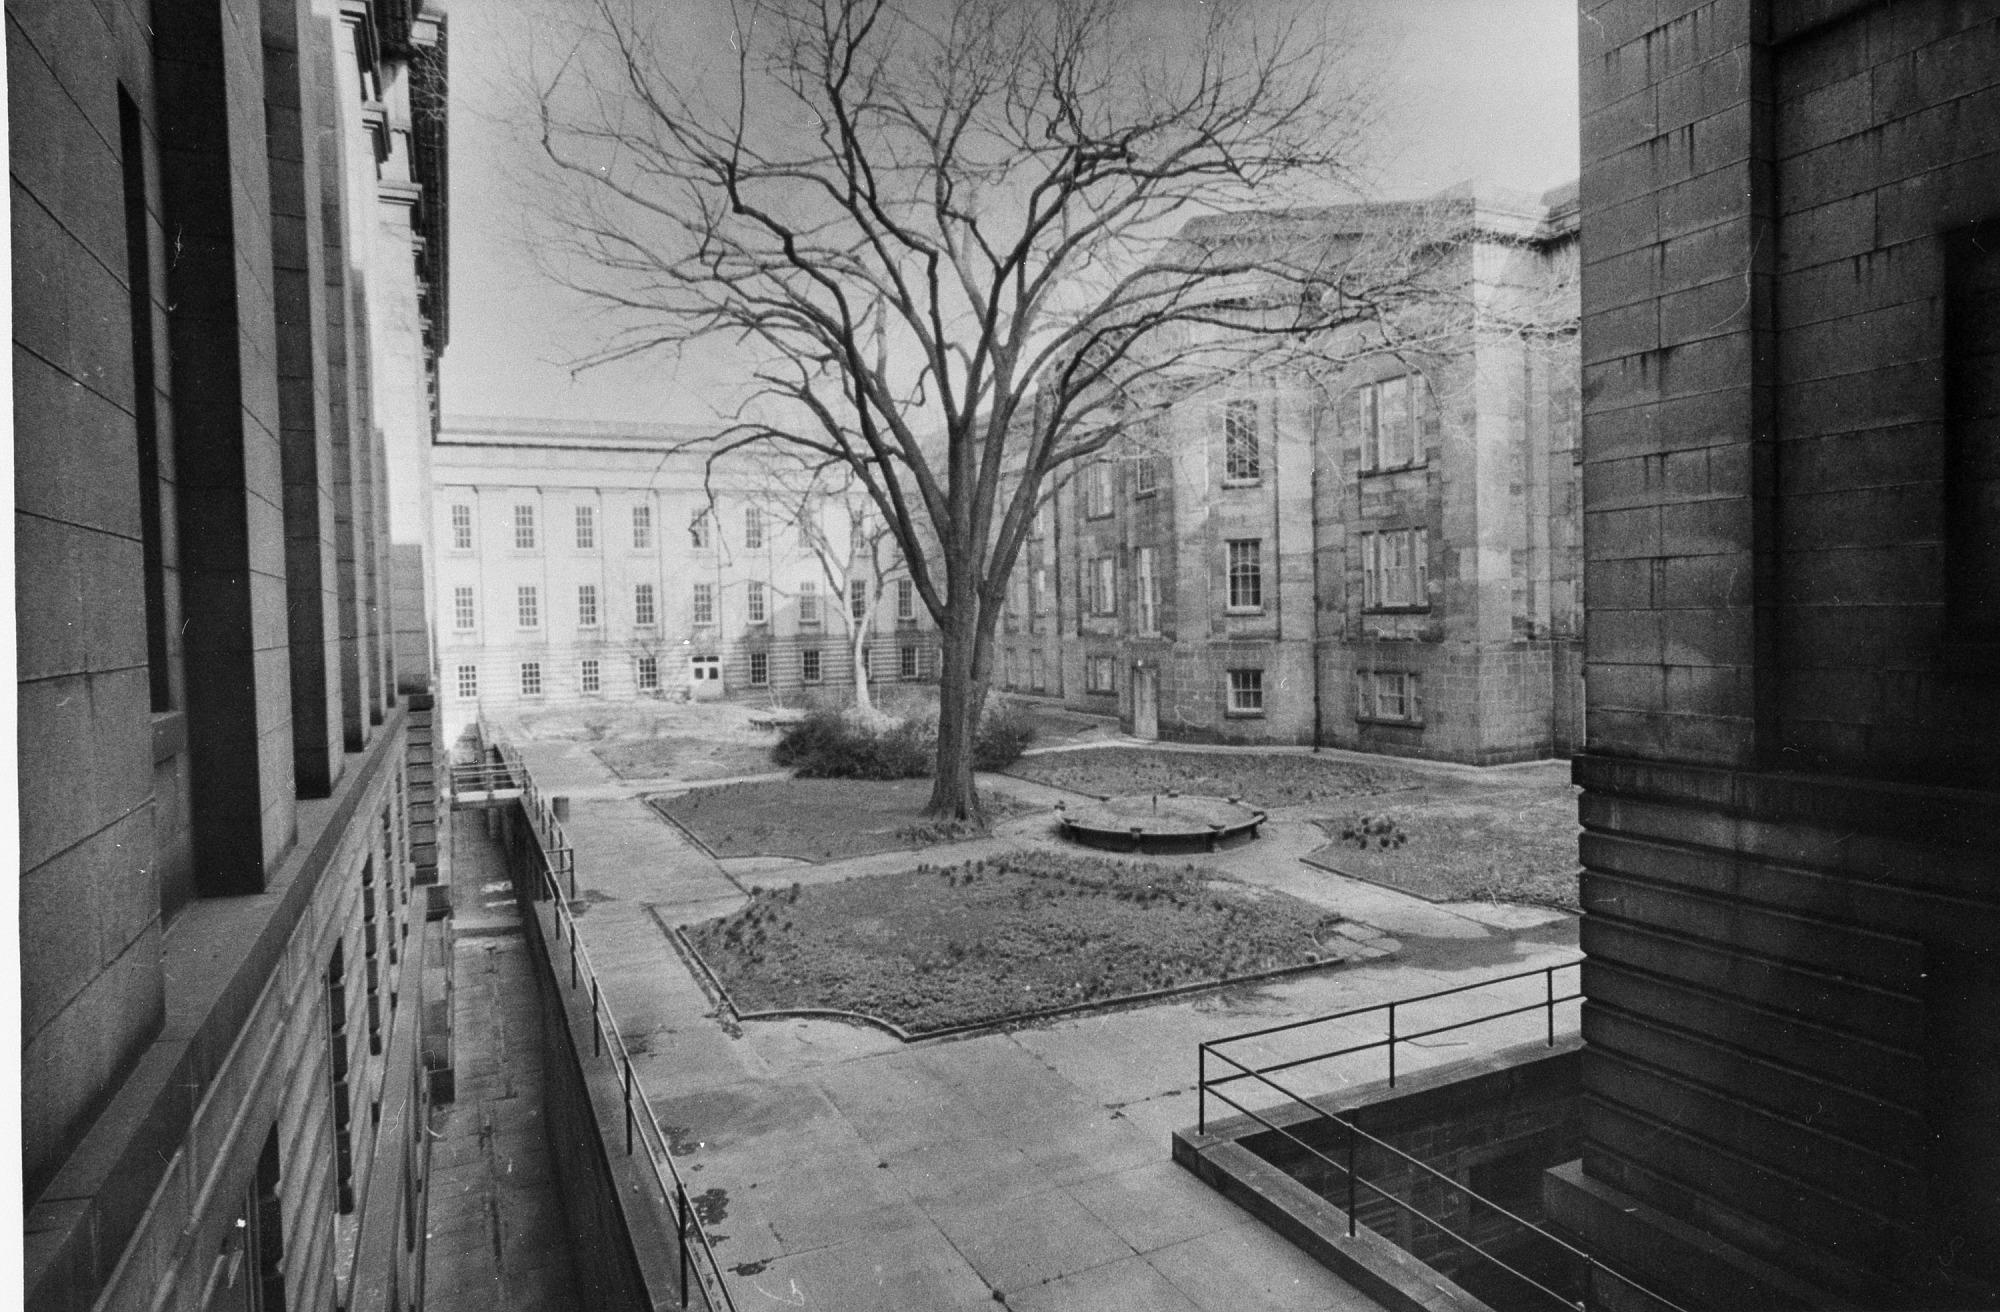 Courtyard of the Old Patent Office Building